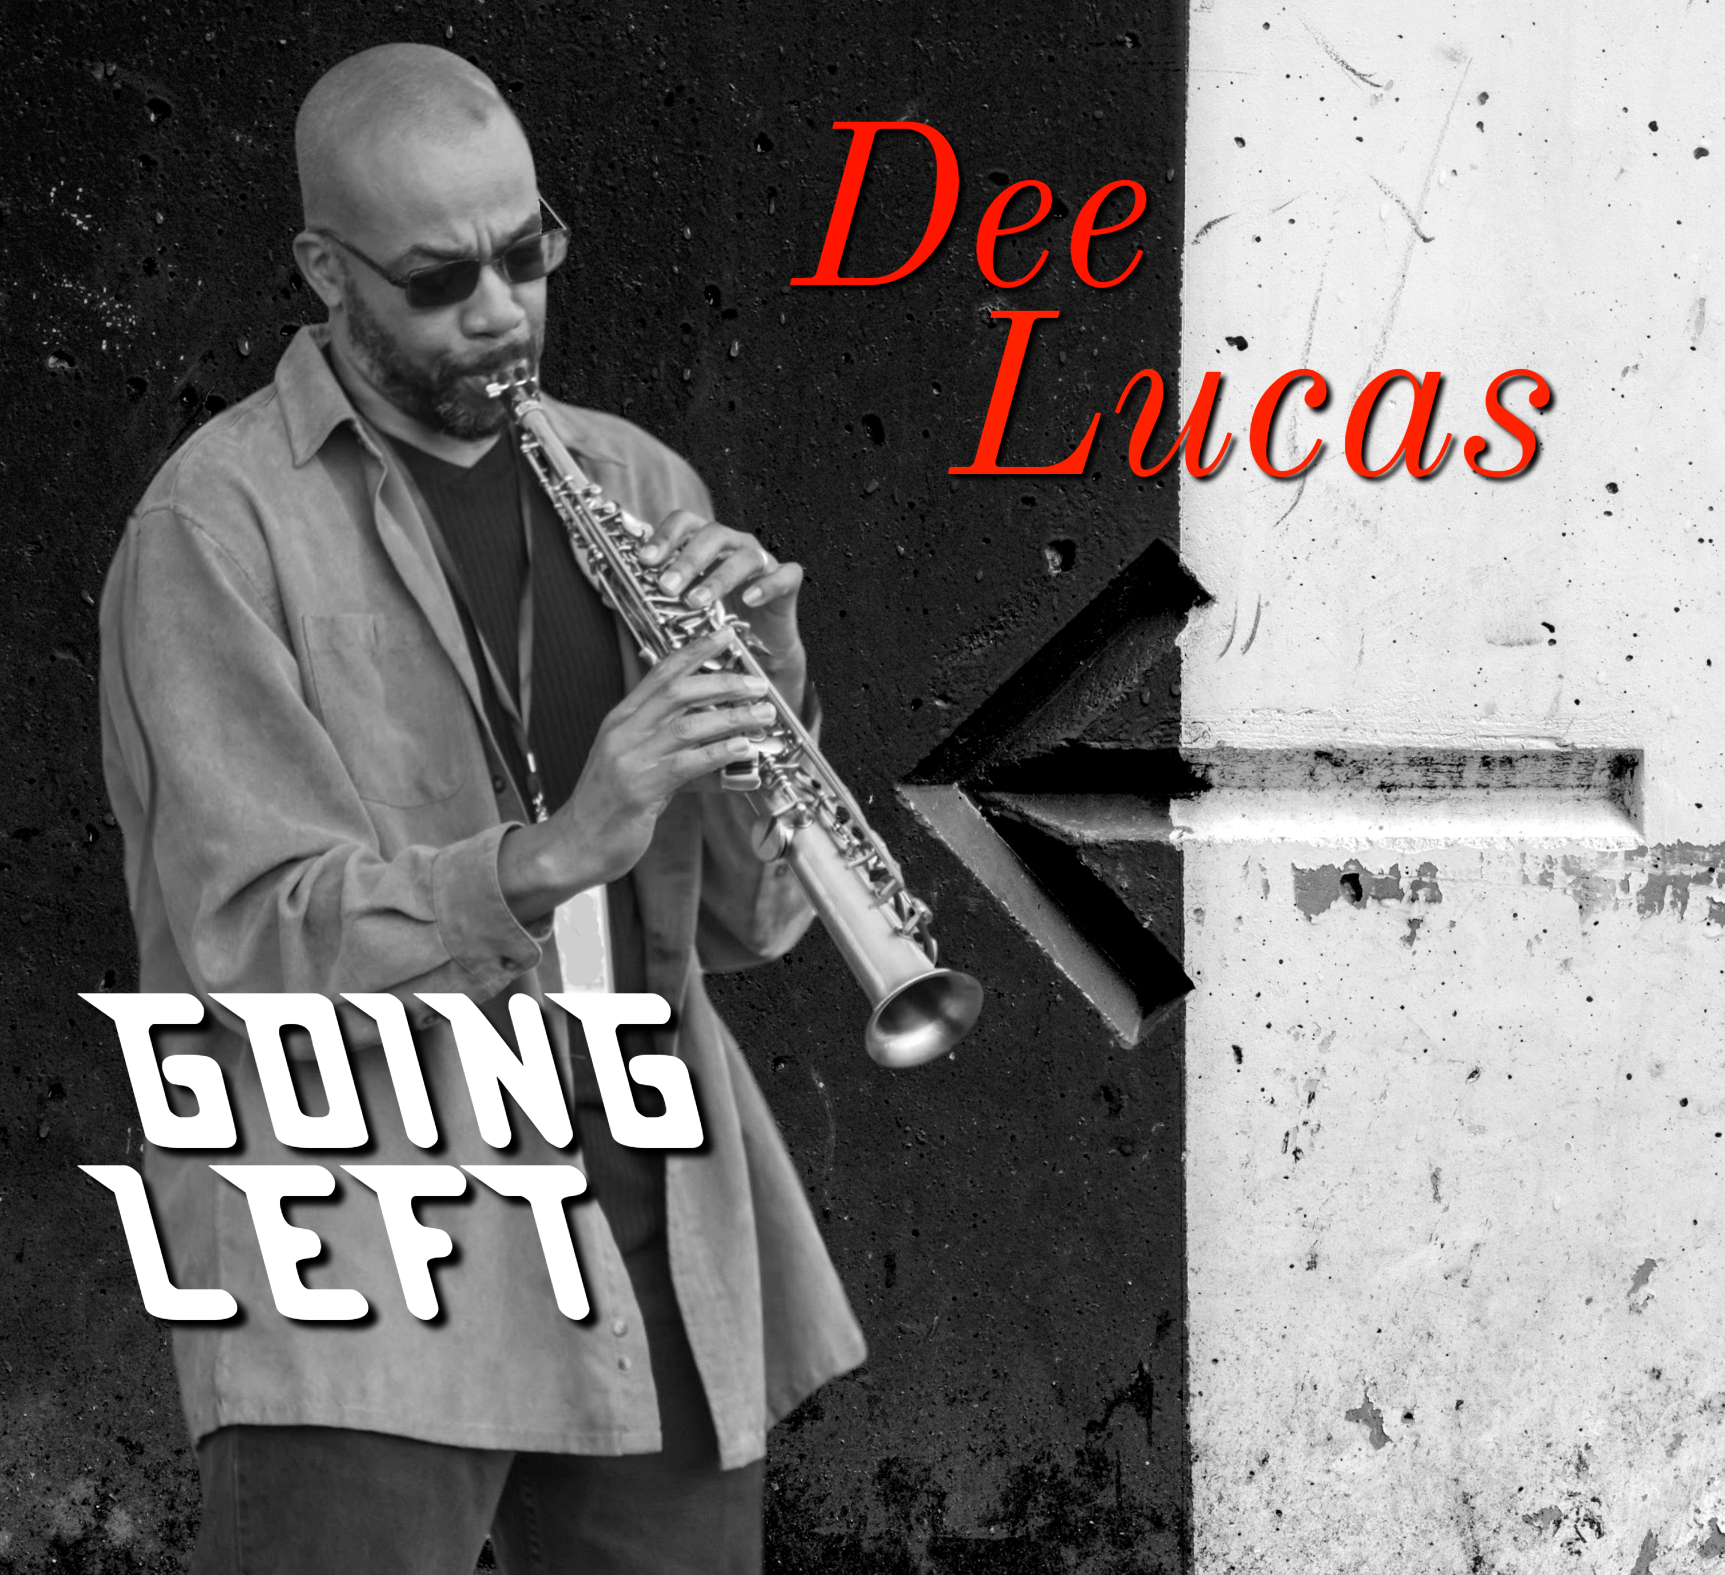 "The new CD from saxophonist Dee Lucas!  Going Left  contains seven new tracks including the hit singles ""Take the L"", ""Zimbabwe"" and the title track. Dee is joined by a group of stellar musicians: David P. Stevens, Joel Del Rosario, Karey Davis, Lew Laing, Jr., Roberto Vally, Keith Lewis, Andrew Freeman, Phil Davis, Dee Cole, Britt Frappier, and Kweli Stevens."